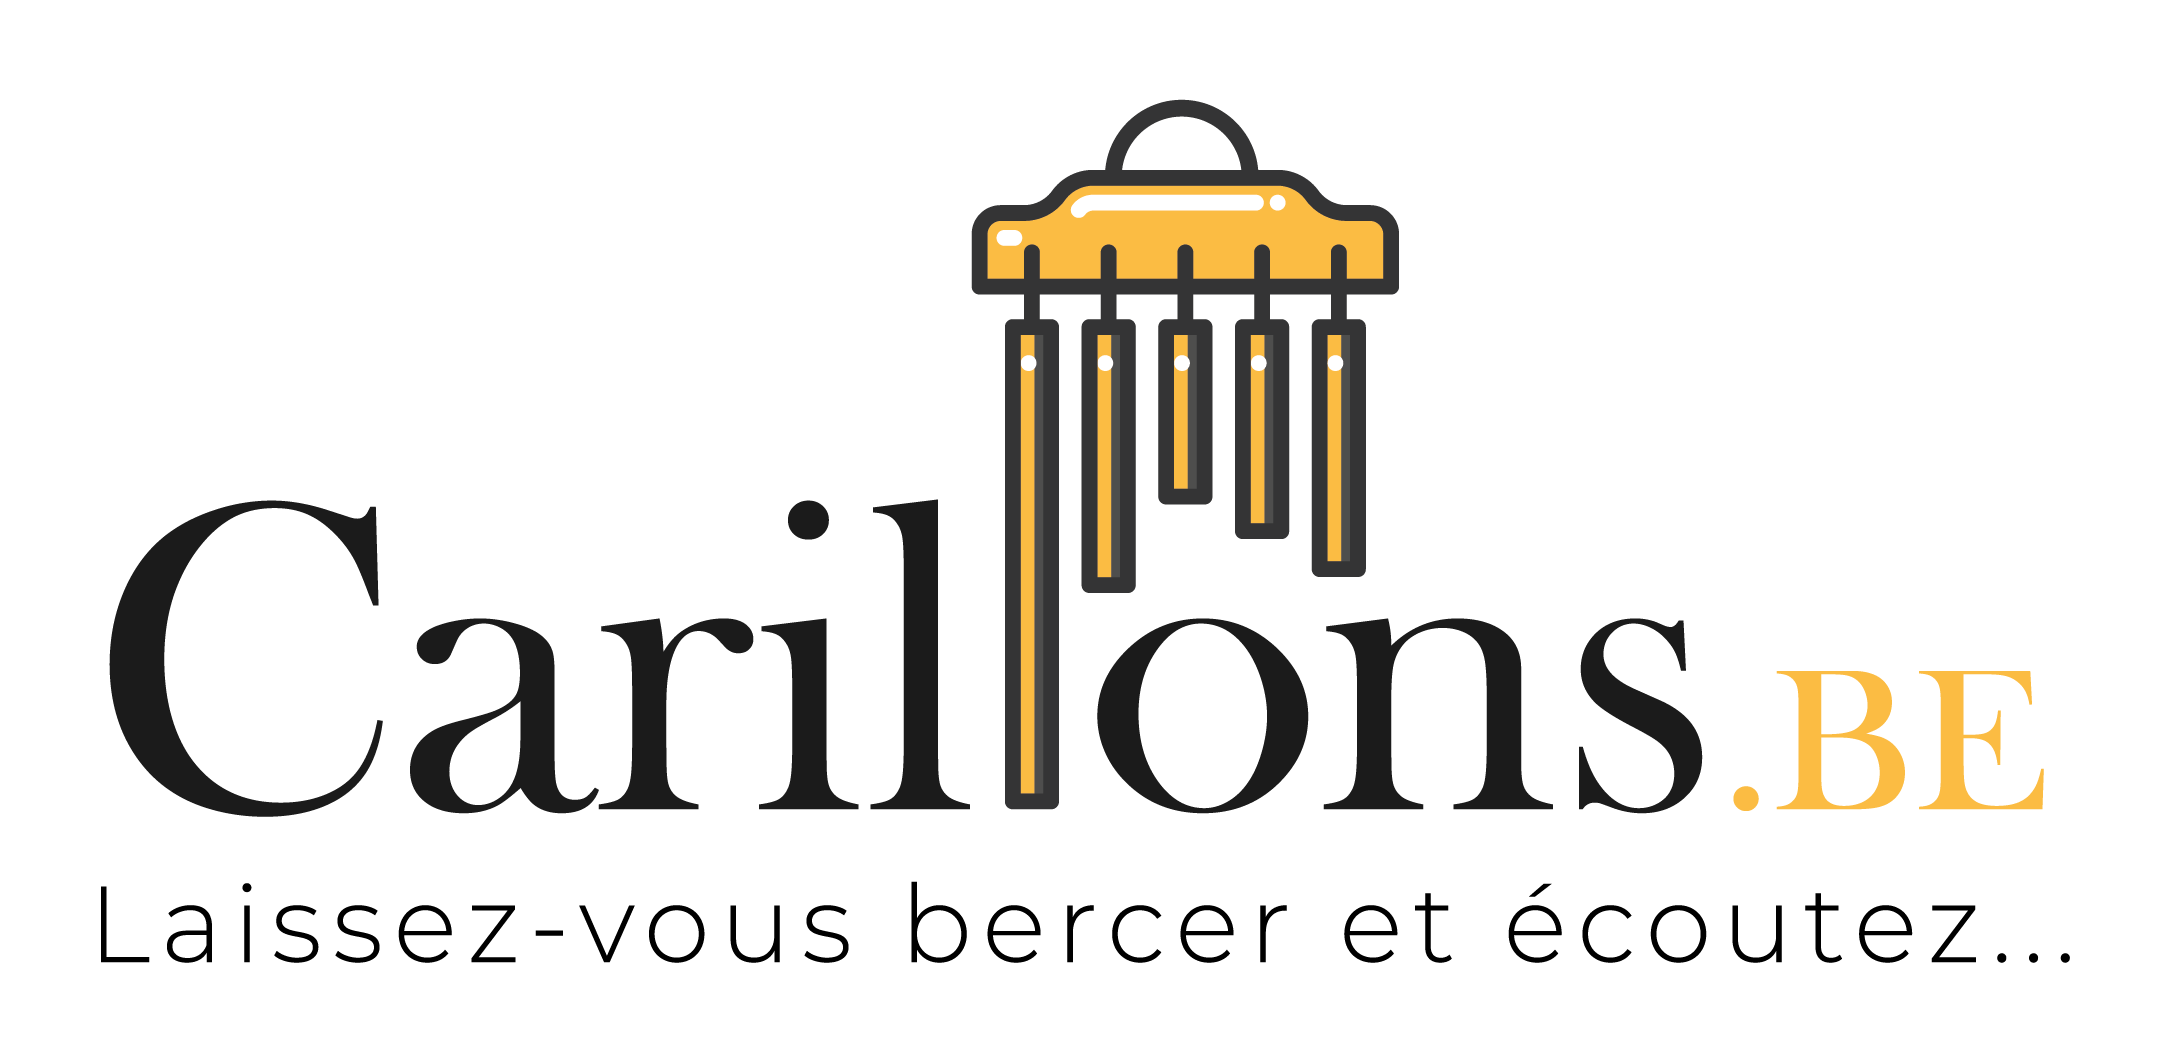 Carillon.be - Le Blog